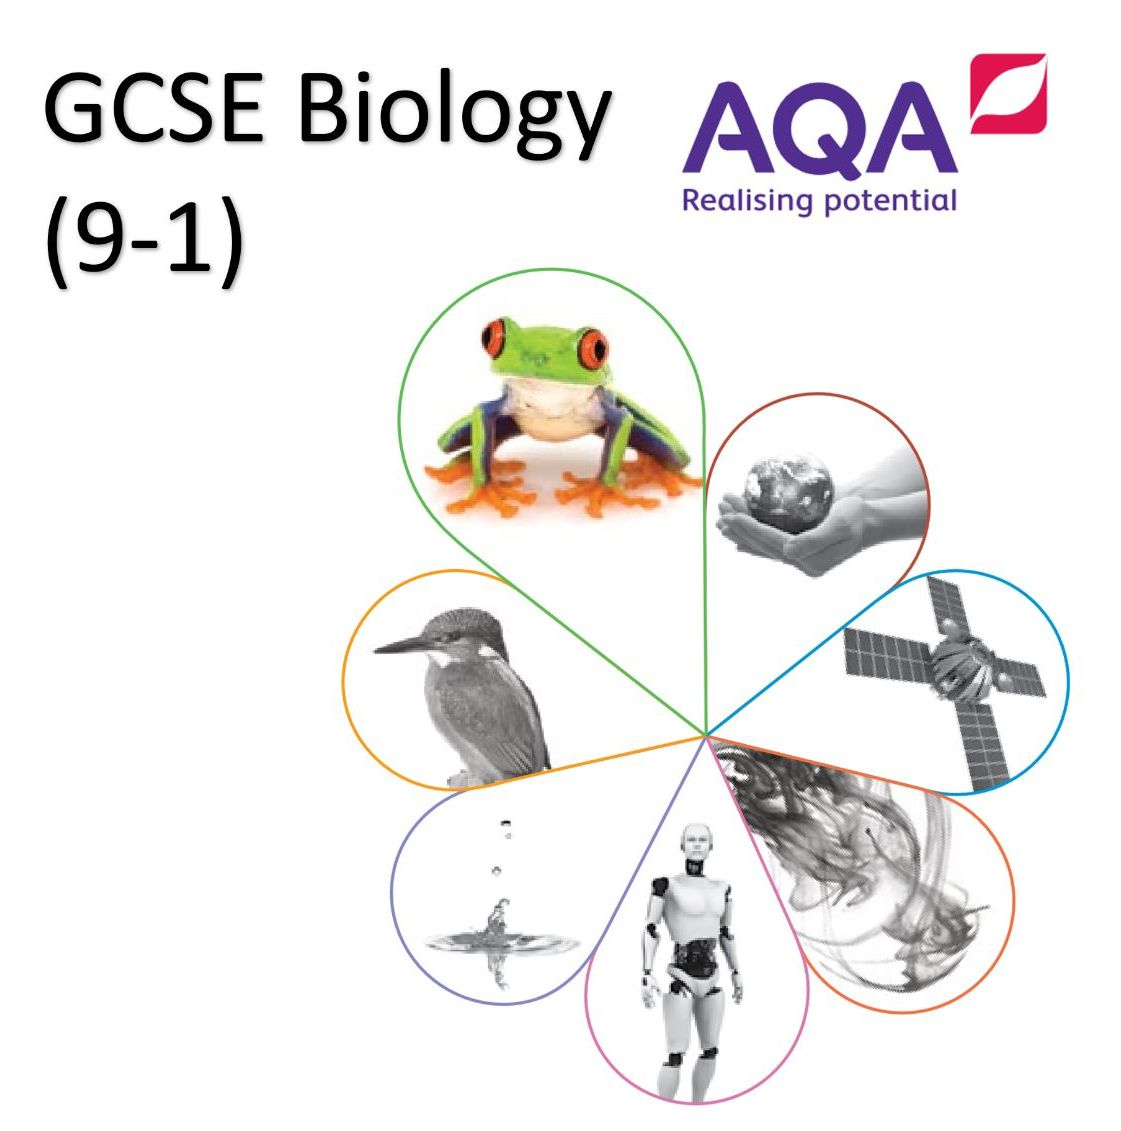 AQA GCSE Biology (9-1) Paper 1 Double Science Revision PowerPoints with  Activities and Answers